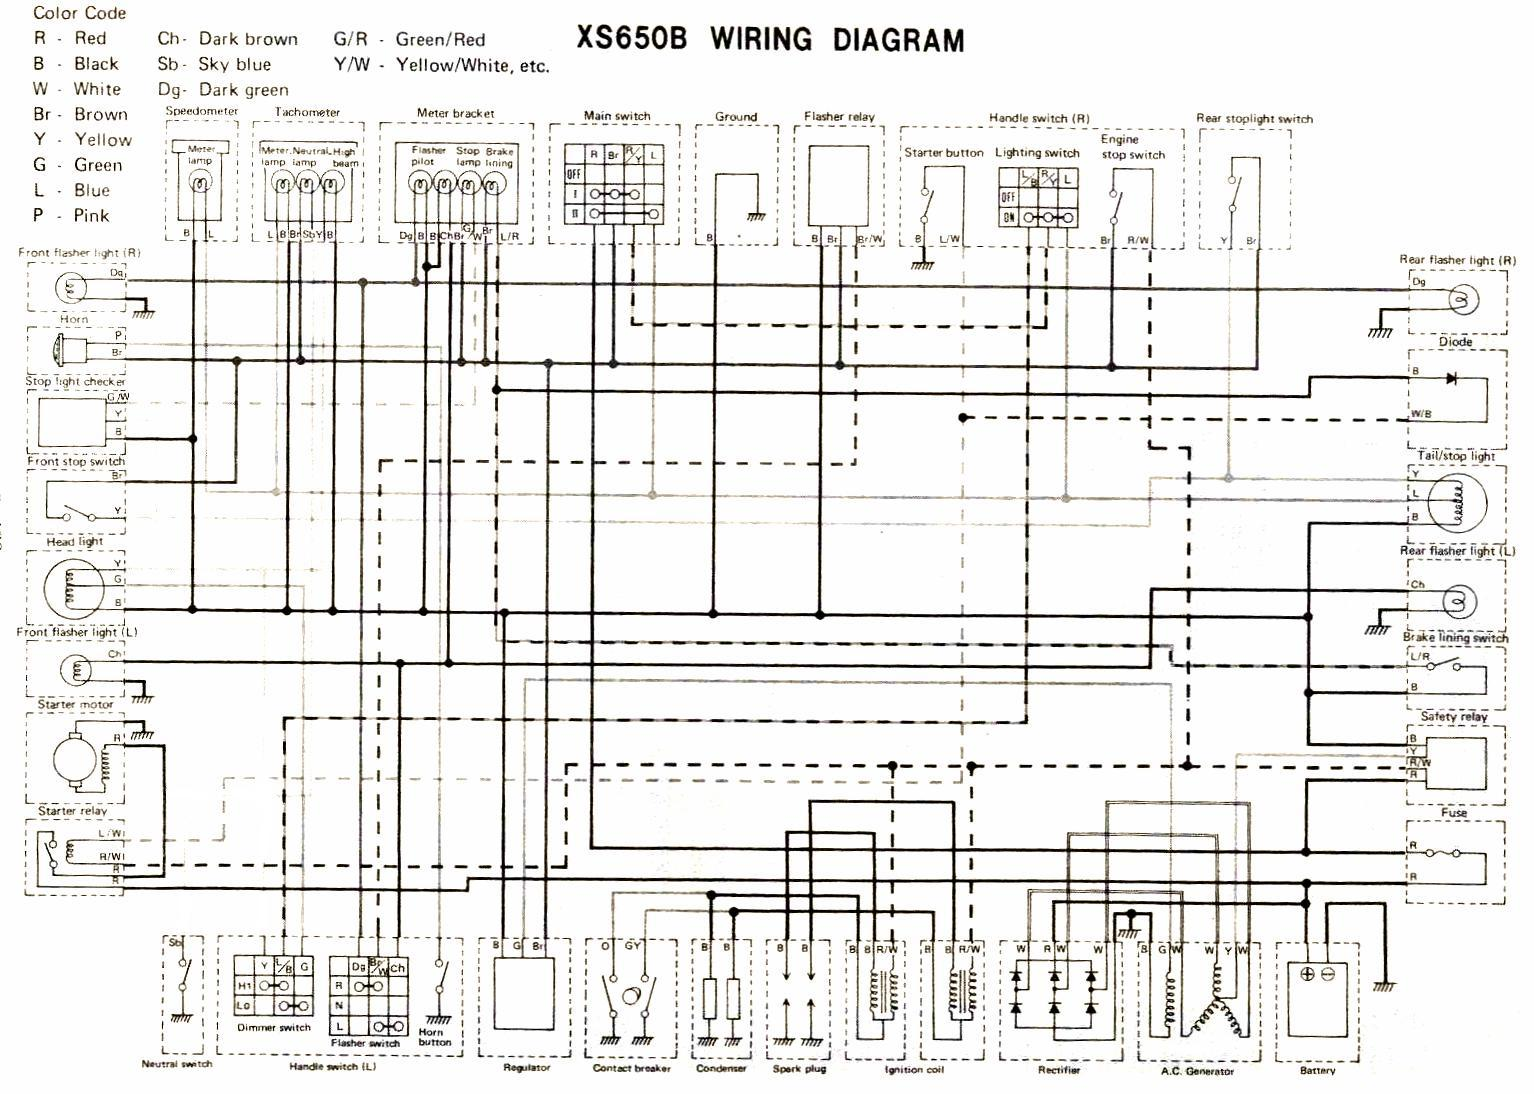 Wiring Diagrams Suzuki T500 Diagram 1975 Xs650b